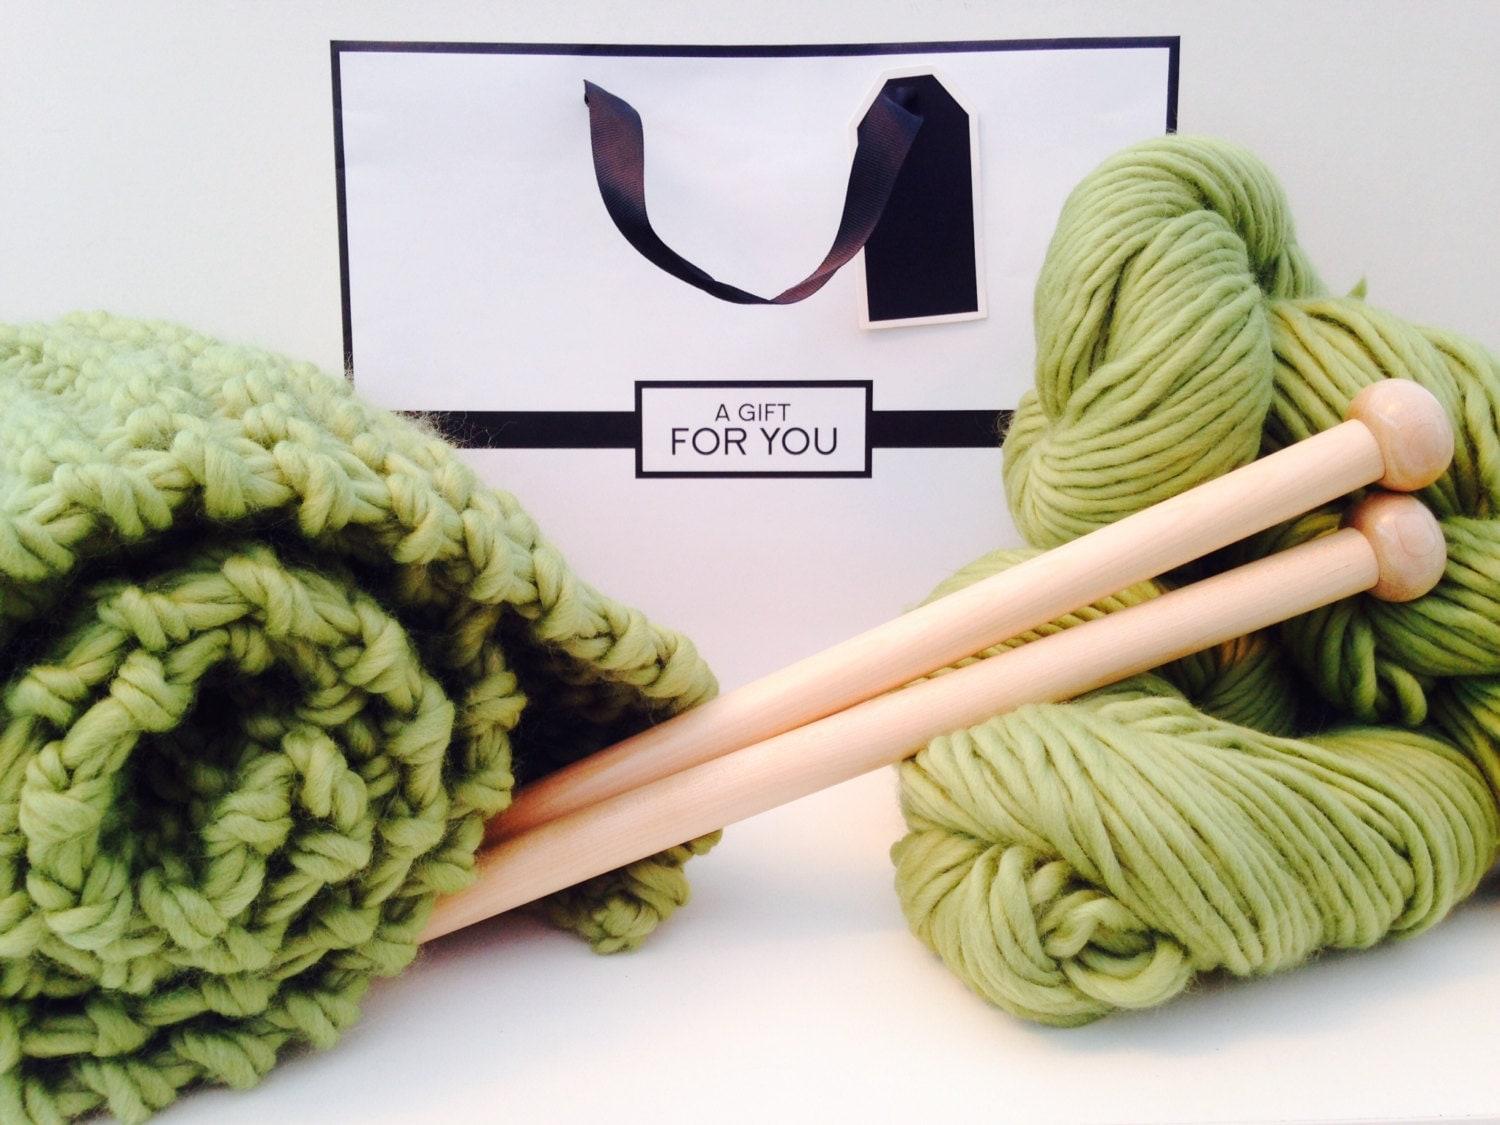 Knitting Kit For Beginners Singapore : Crochet kits for beginners creatys